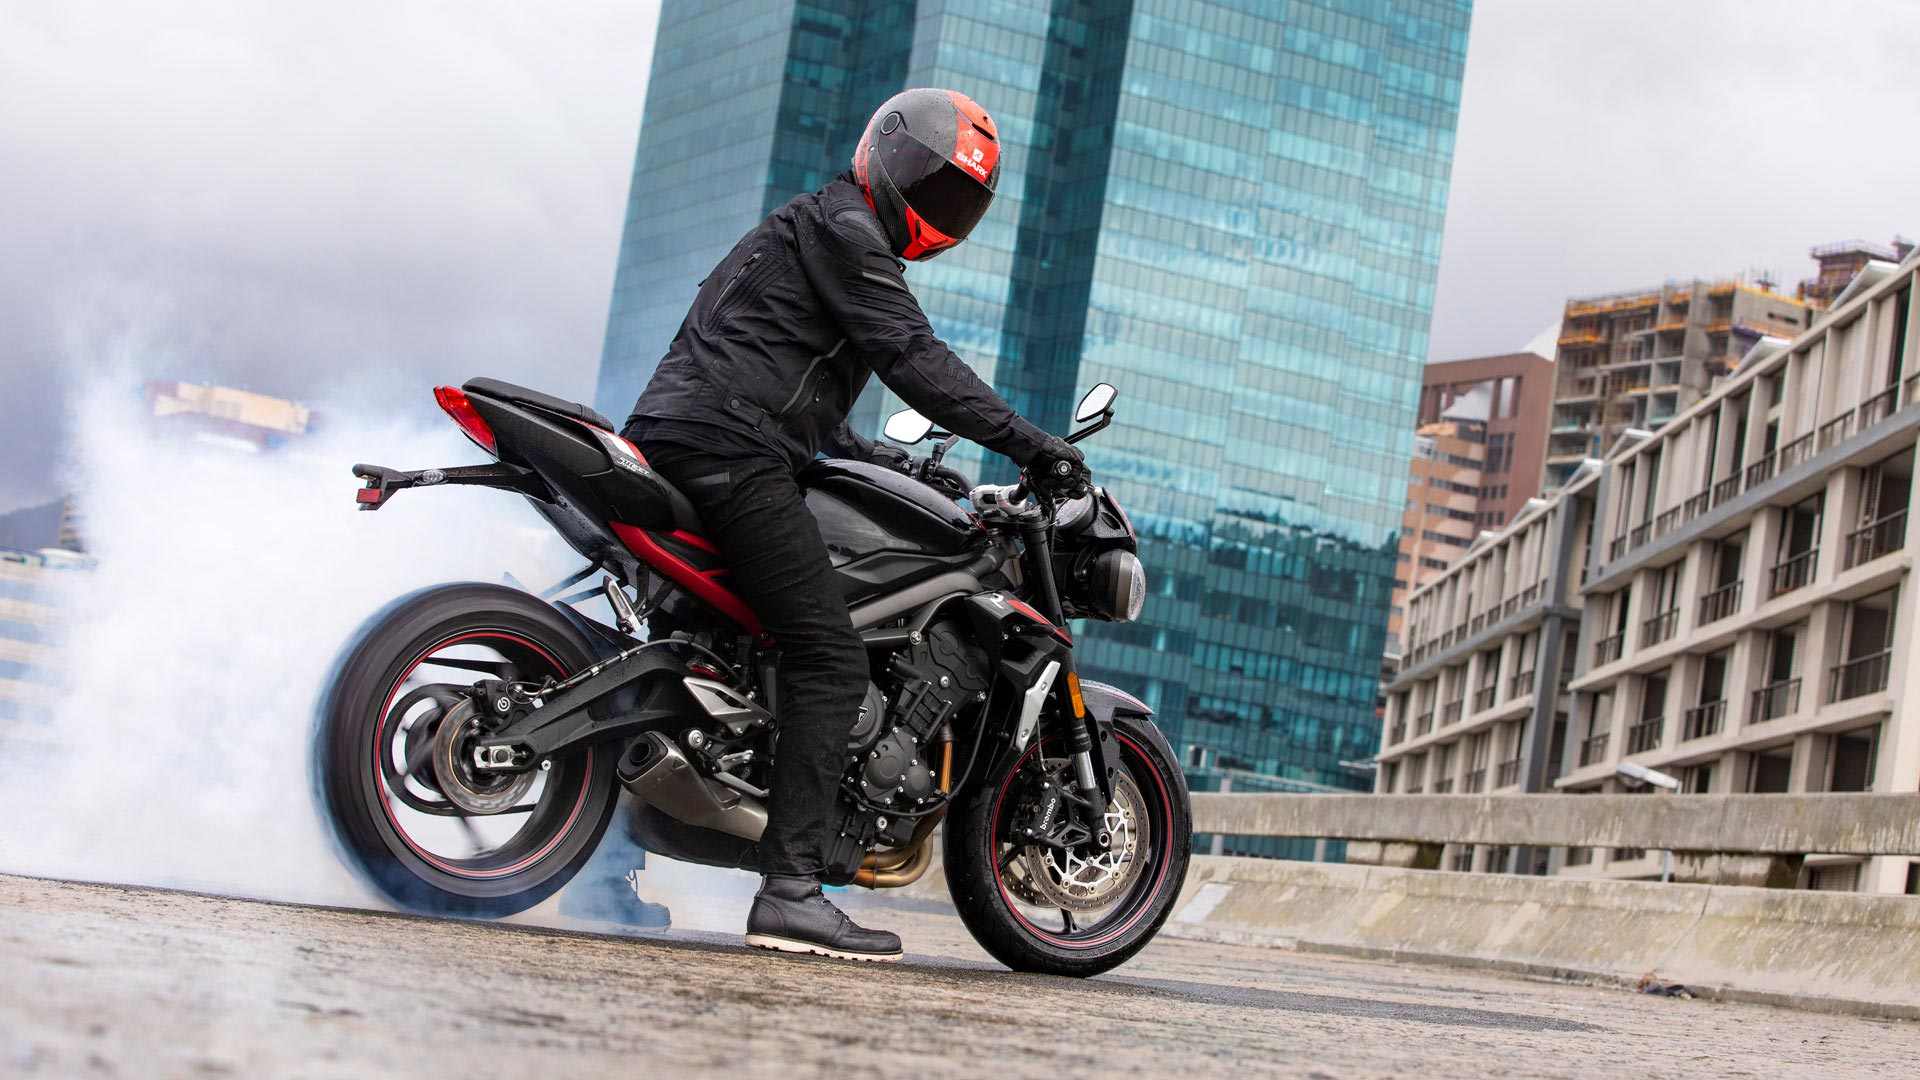 Street Triple R rear wheel spinning while stationary